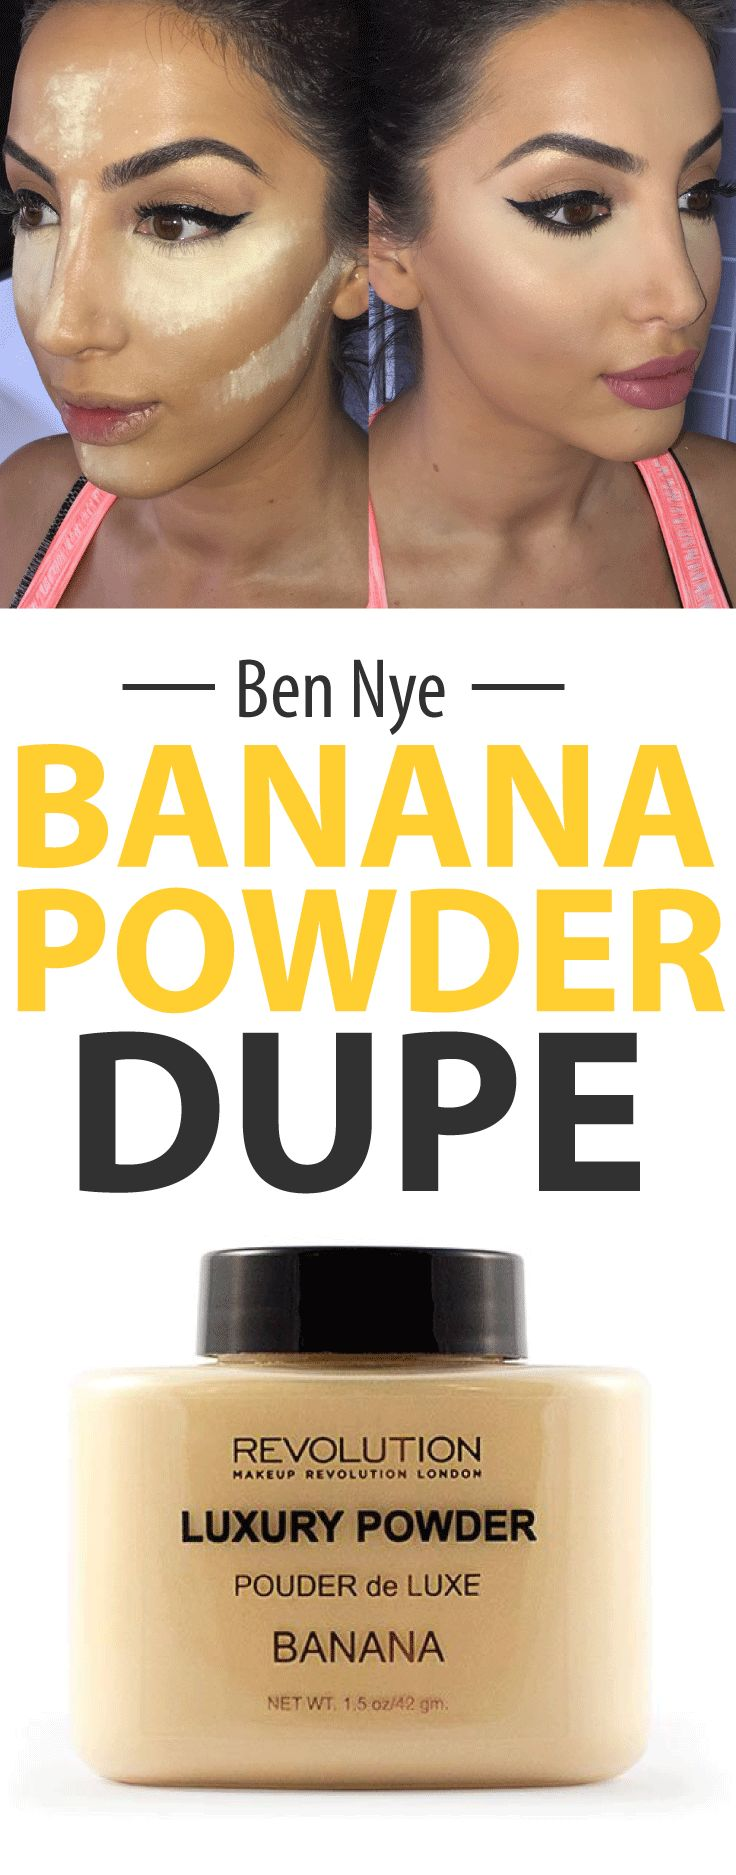 OMG! This Ben Nye Banana Powder Dupe is only £5...